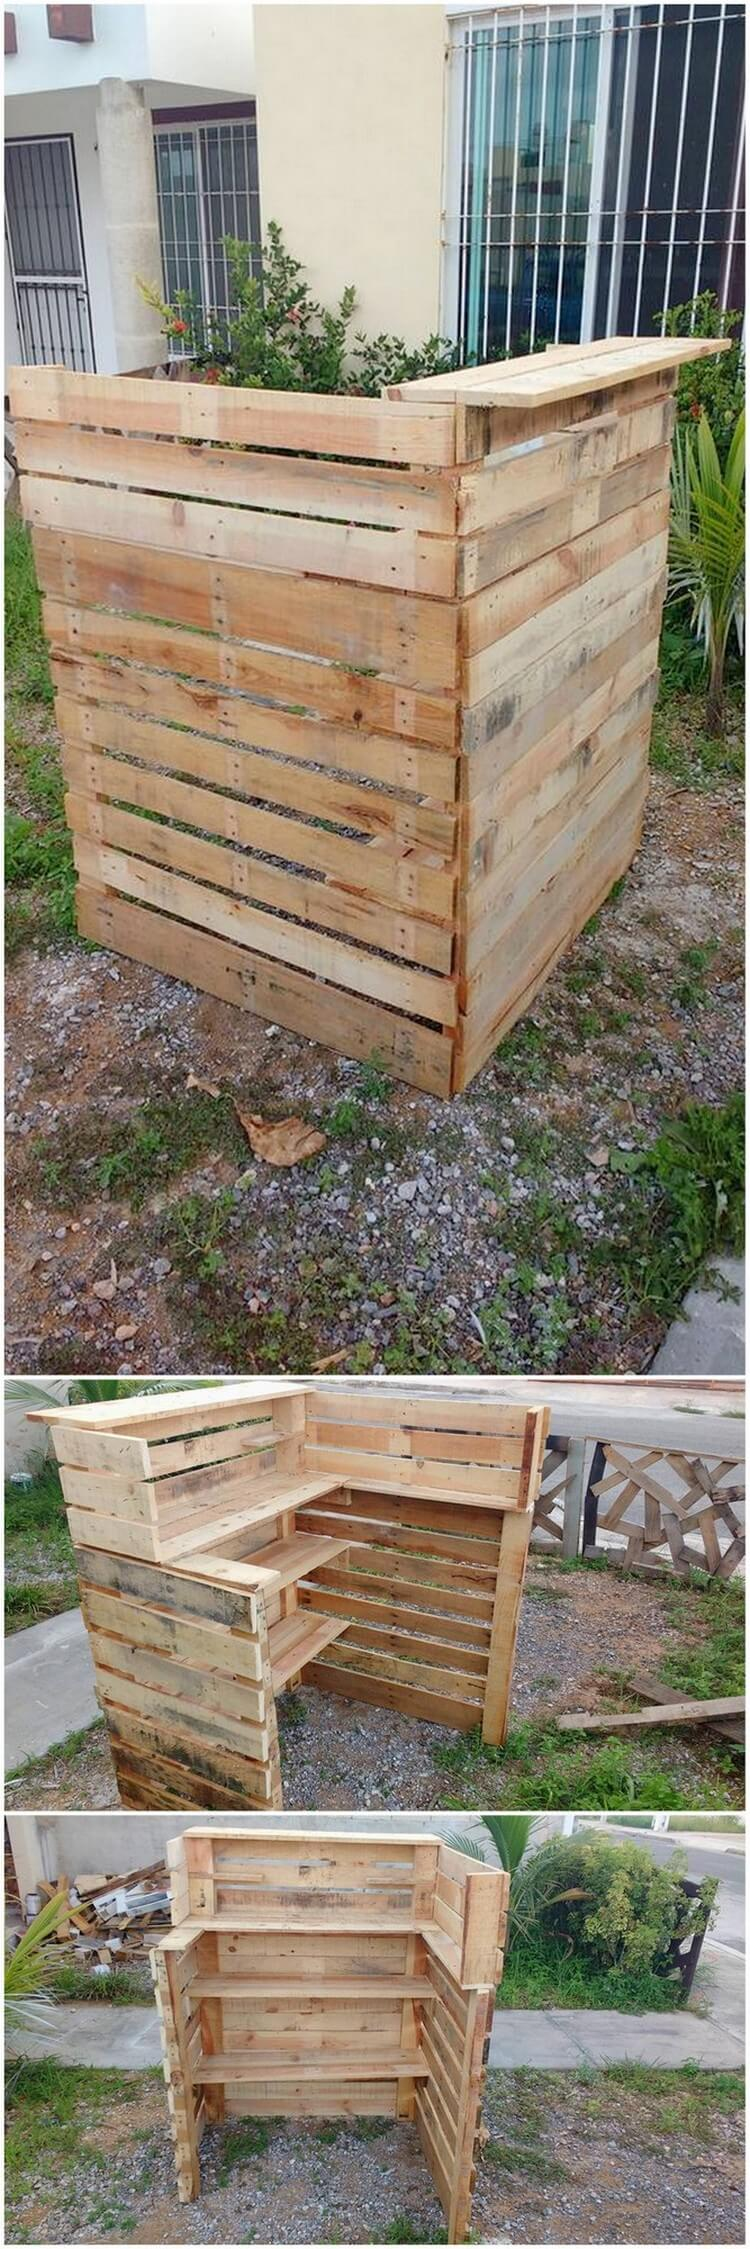 Amazing Creations with Reused Wooden Pallets | Pallet Wood ...